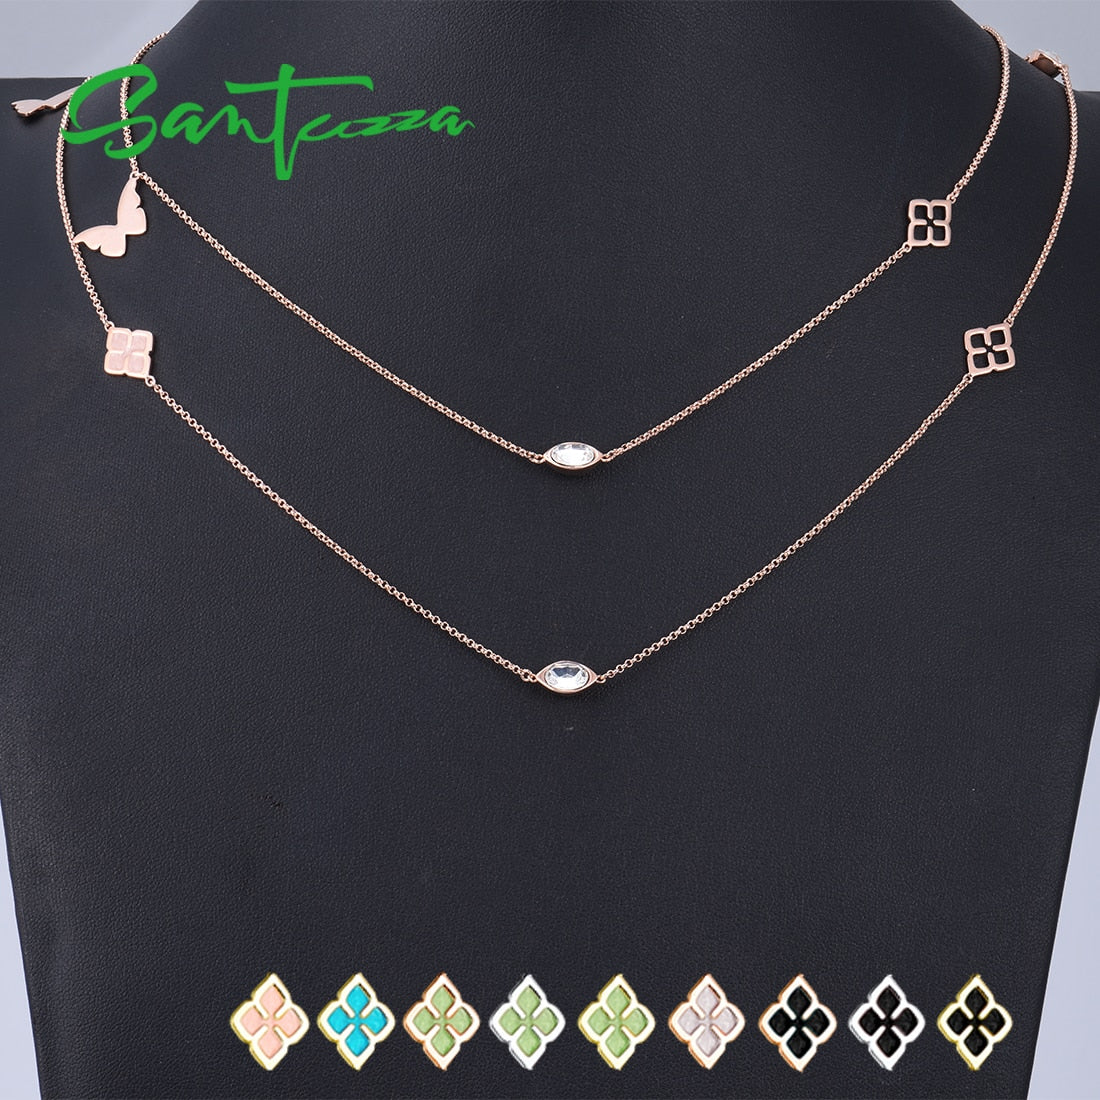 Handmade Geometric Necklace For Women